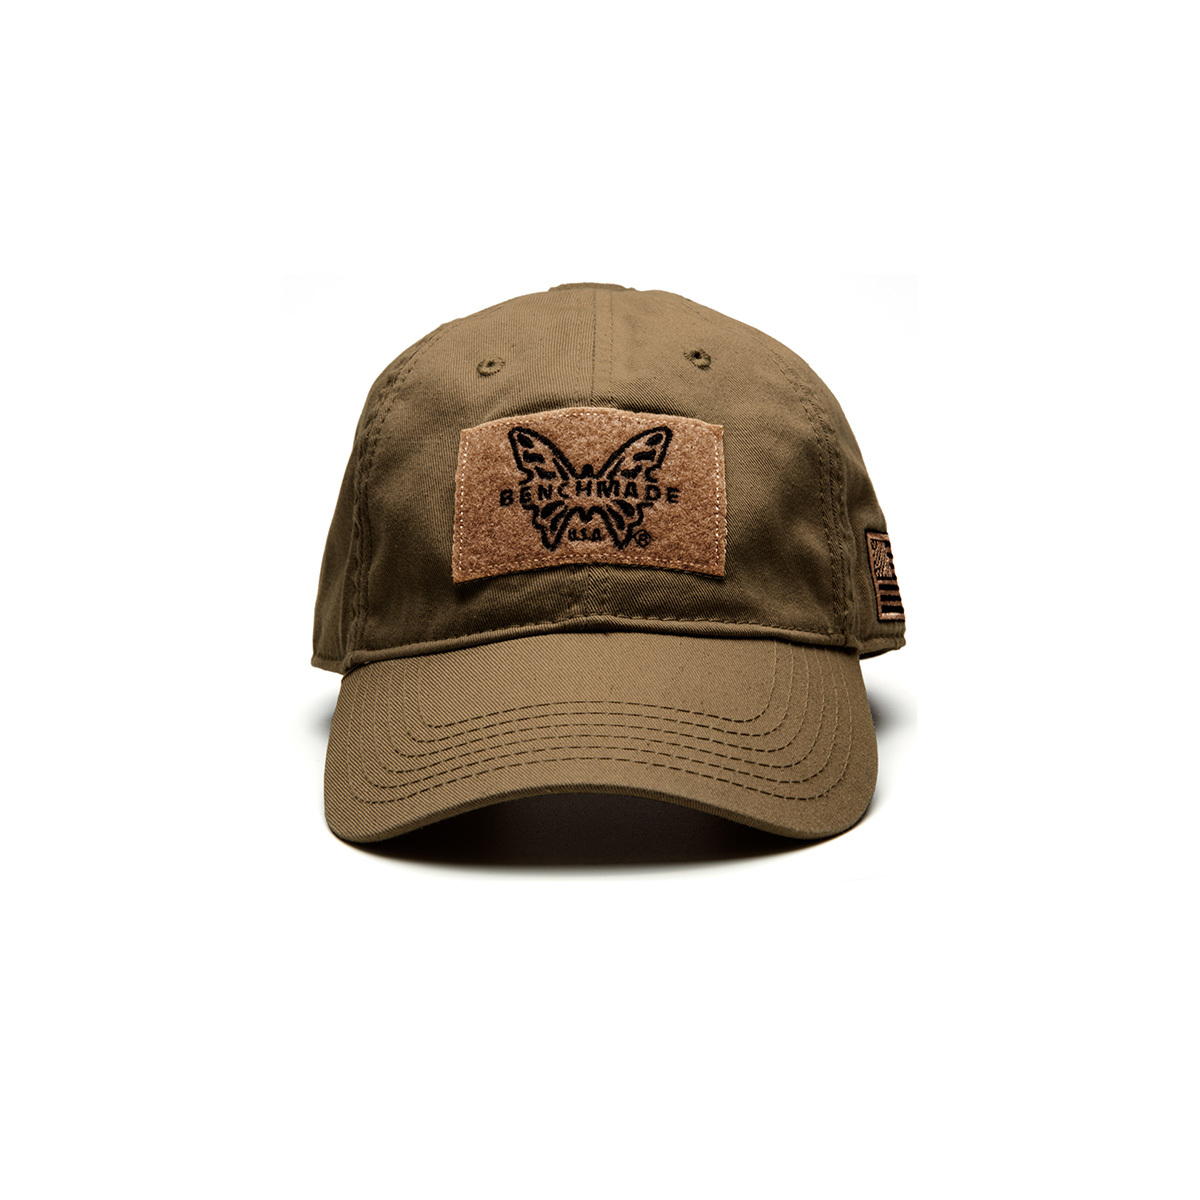 Фото - Бейсболка Benchmade Tactical Hat Coyote jim smart ford coyote engines